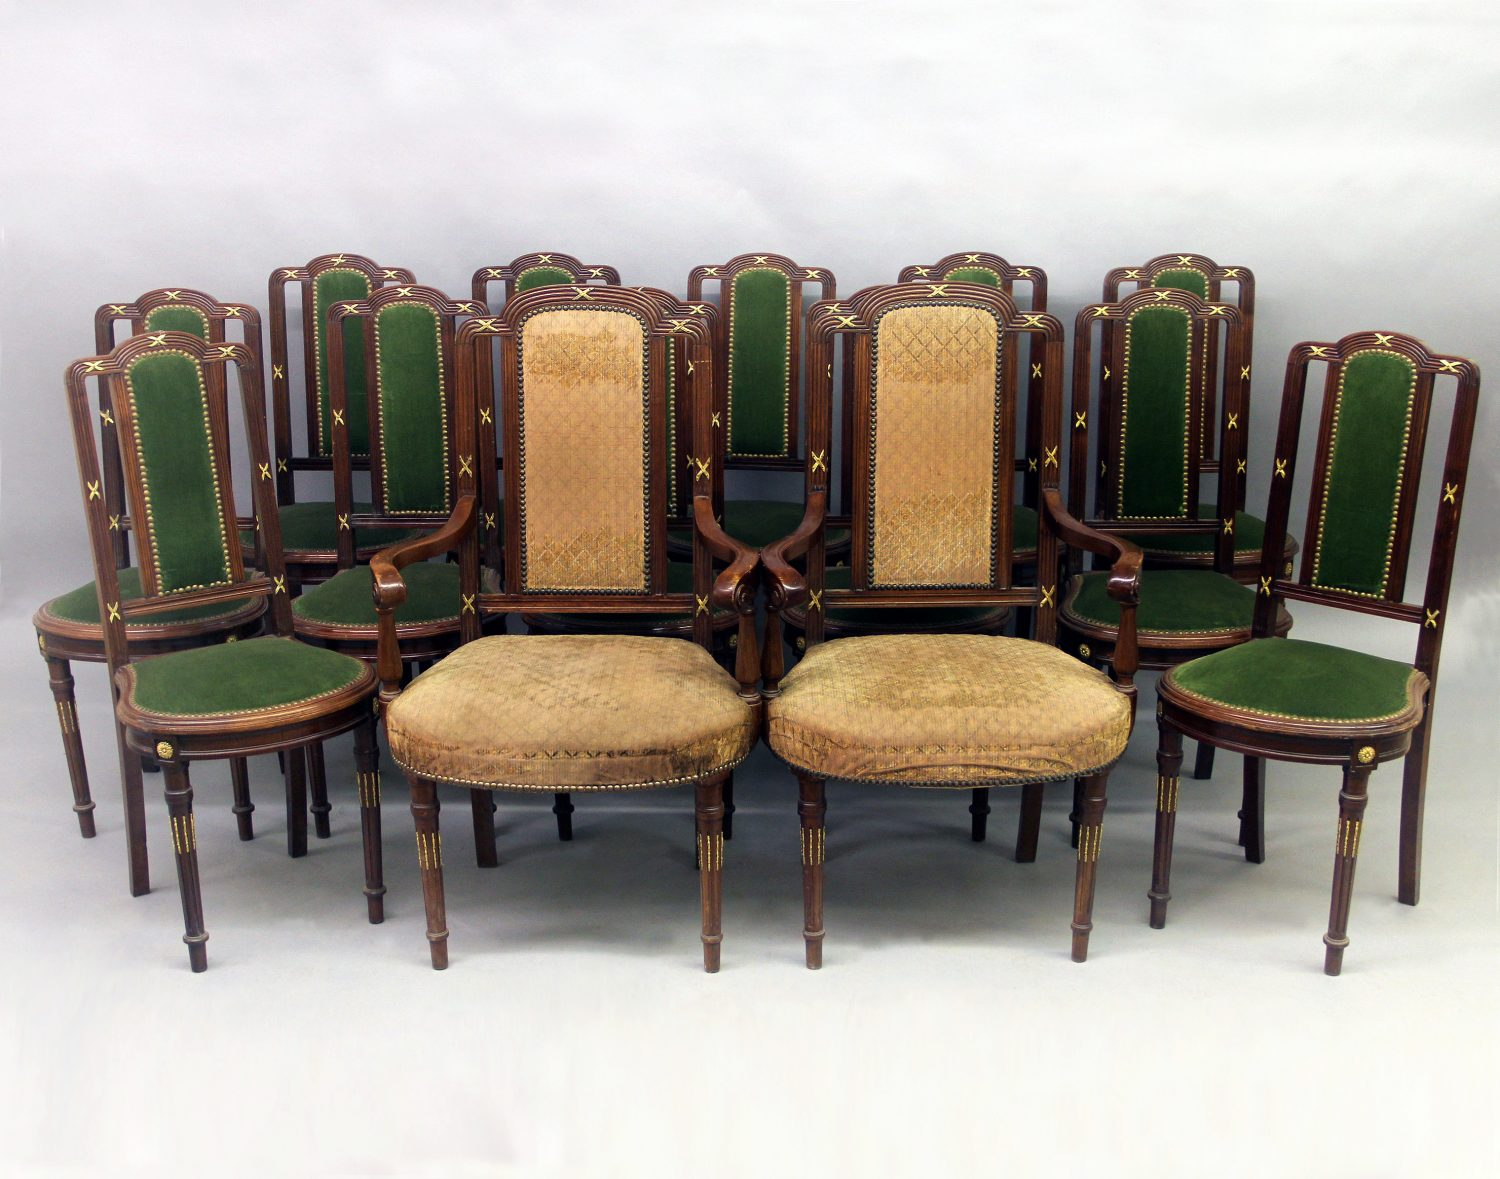 Set of Fourteen Late 19th Century French Antique - Gilt Bronze Mounted Transitional Style Dining Chairs